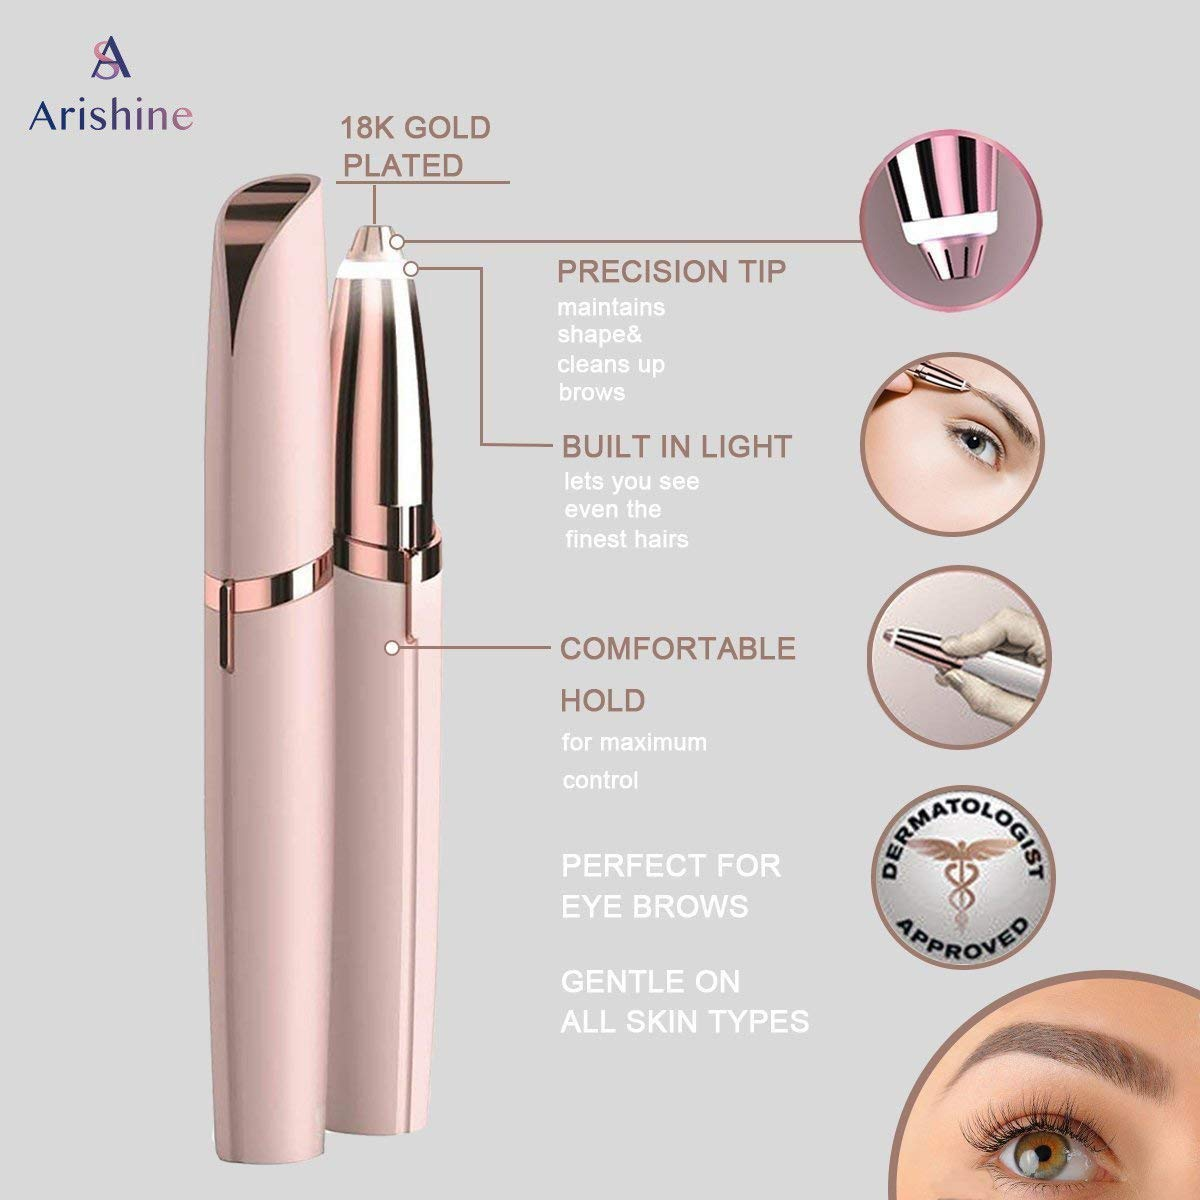 Electric Flawless Brows Eyebrow Hair Remover, Women's Painless Hair Remover for Nose, Eyebrow Hair, Face Lip, Flawlessly Brow Hair Remover Arishine(no battery) by Arishine (Image #1)